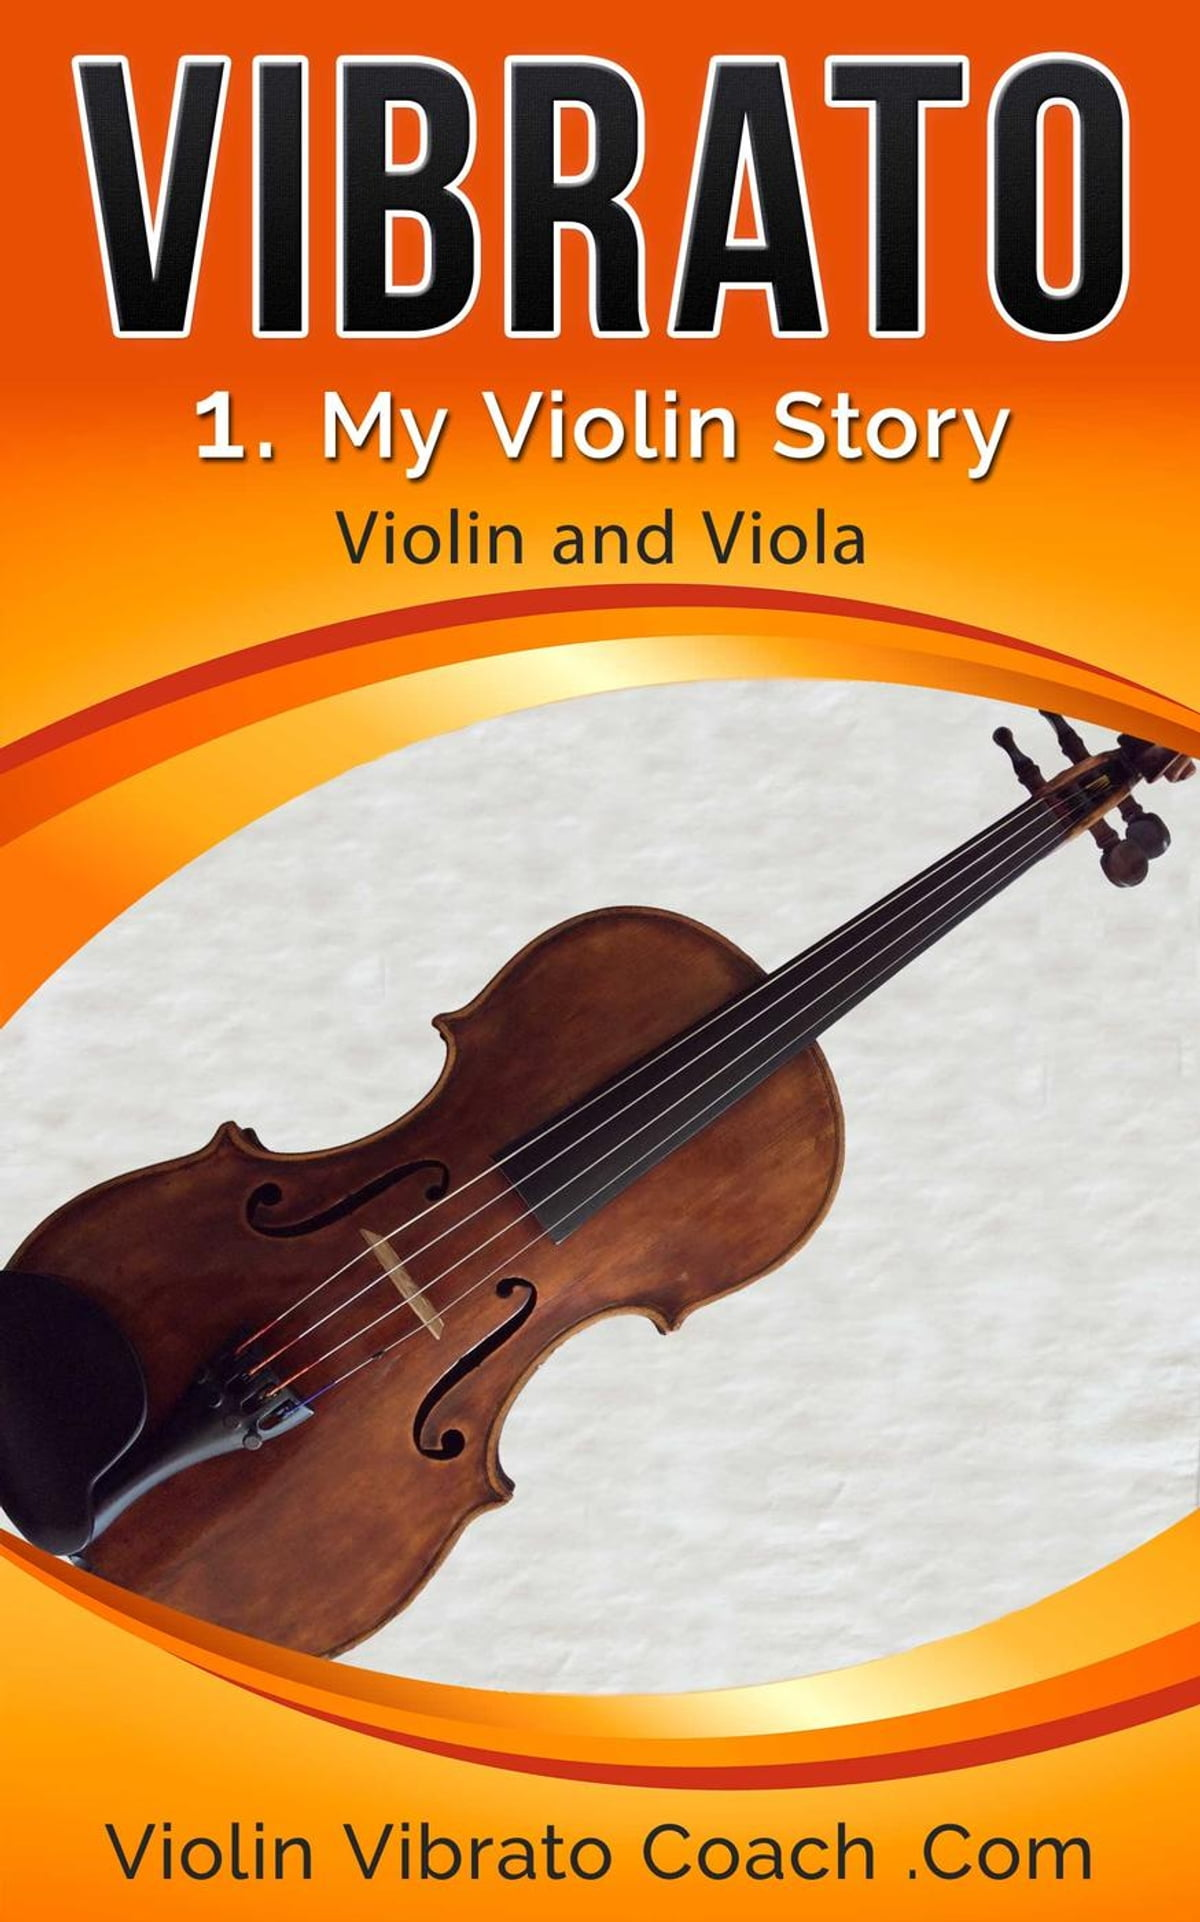 My Violin Story eBook by Kevin W Jameson - 9781540173812